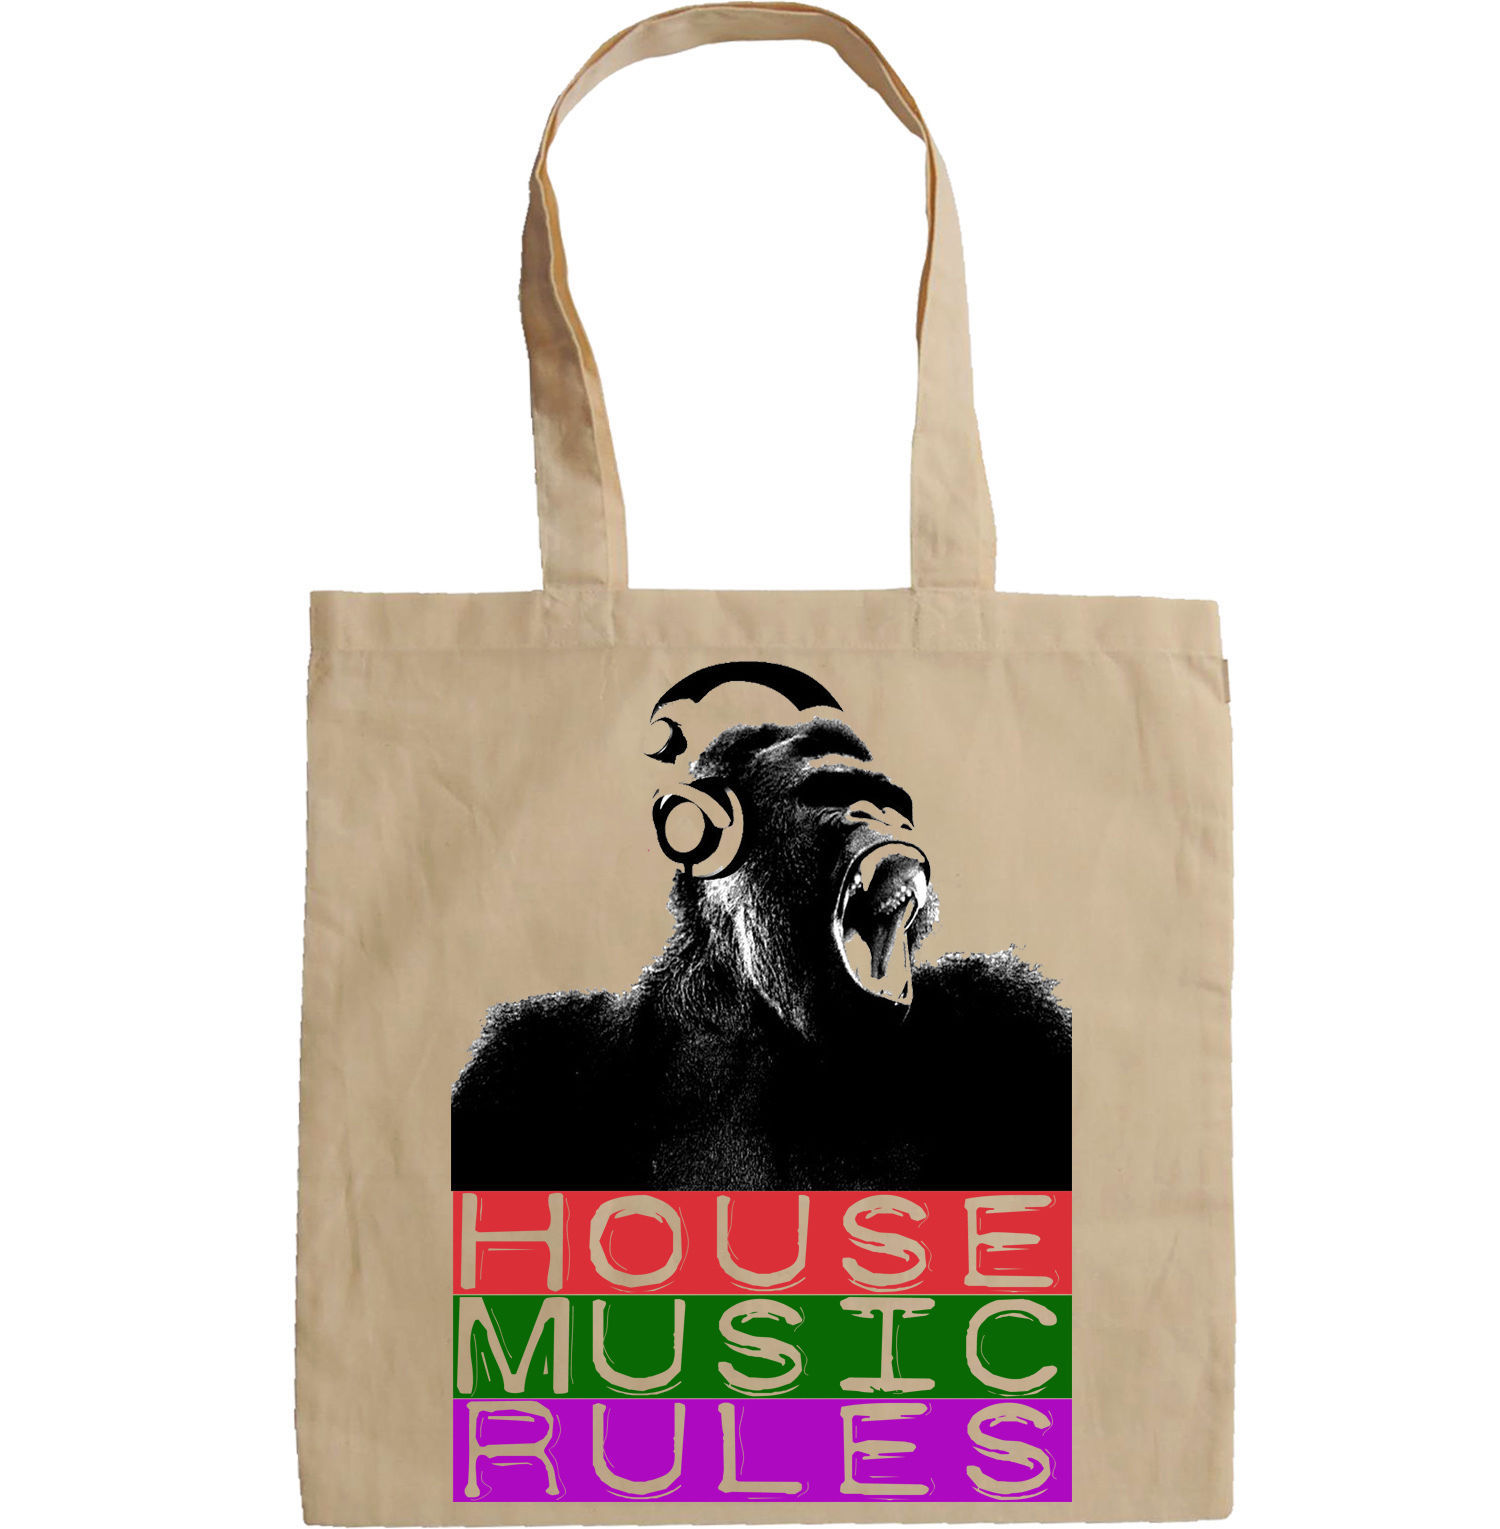 HOUSE MUSIC RULES - NEW AMAZING GRAPHIC HAND BAG/TOTE BAG